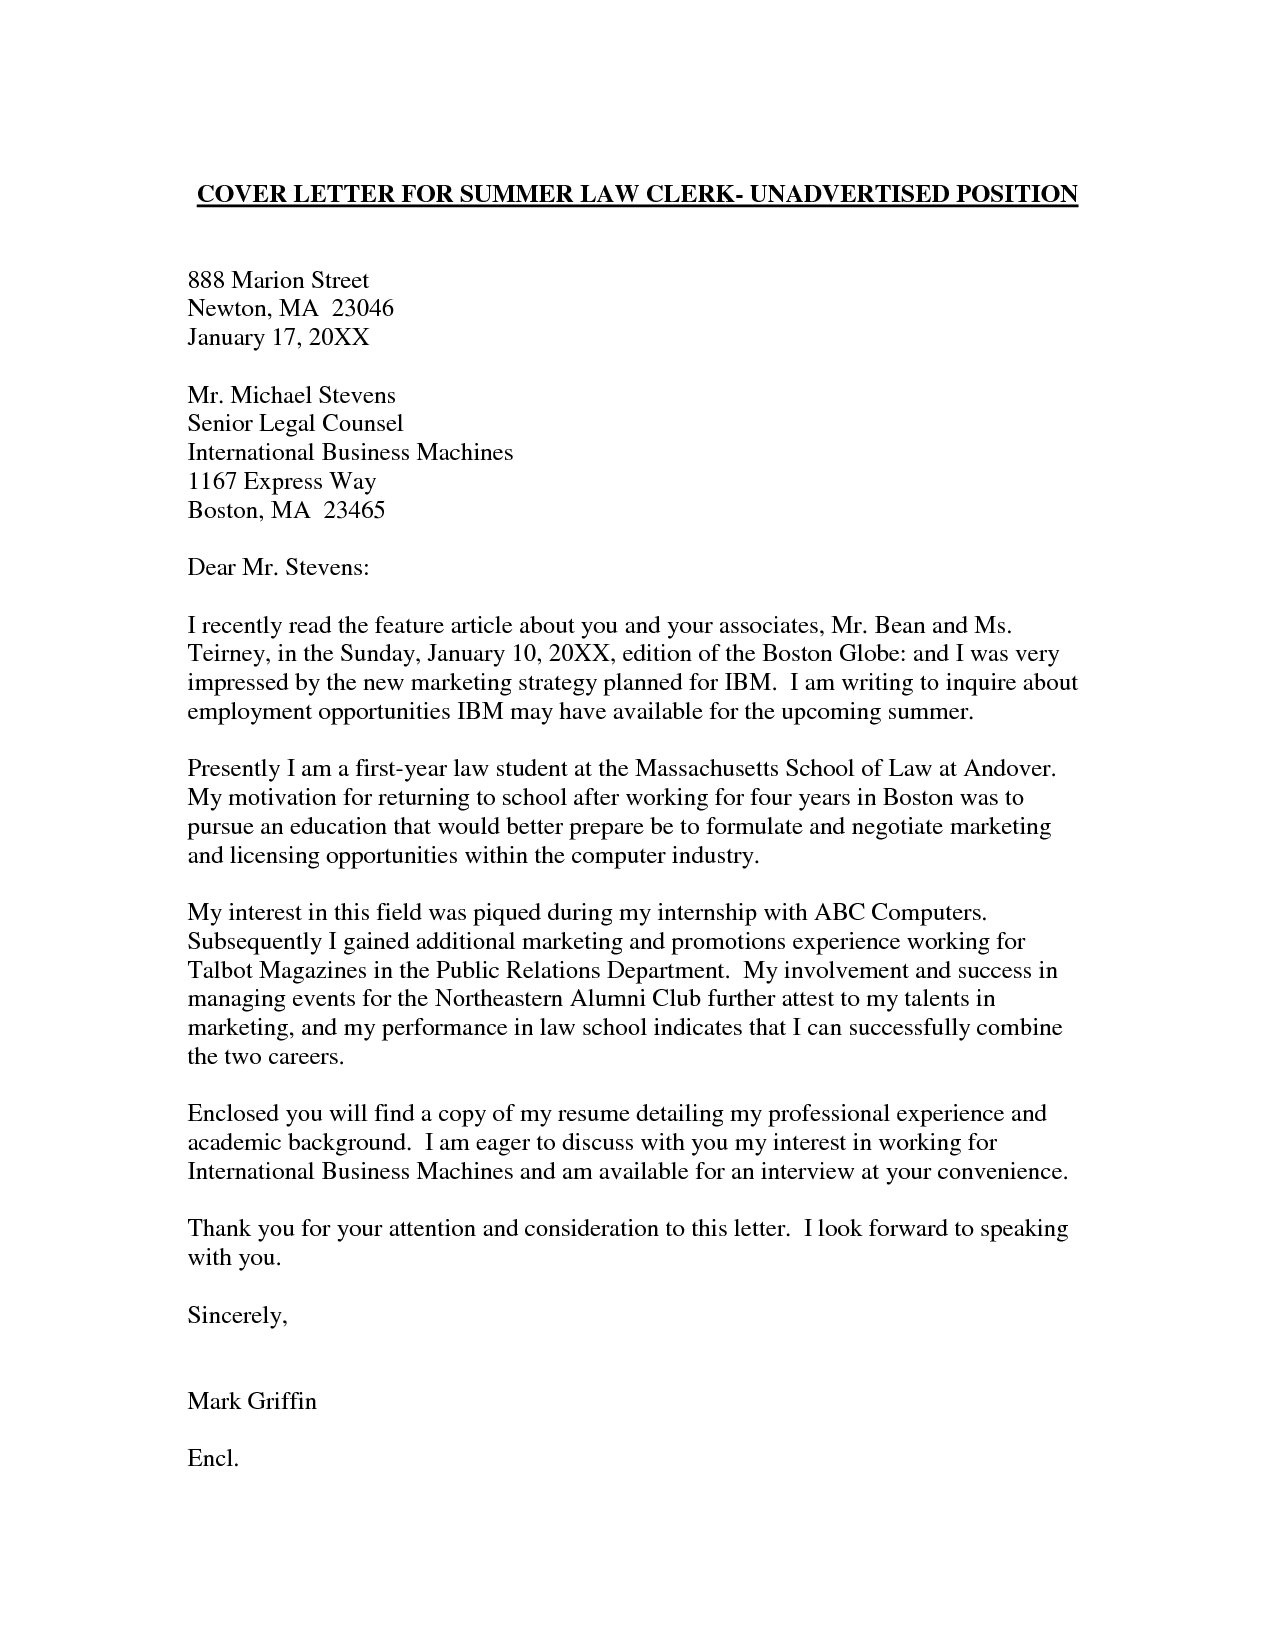 Application Letter Sample For Unadvertised Job - Cover Letter For ...